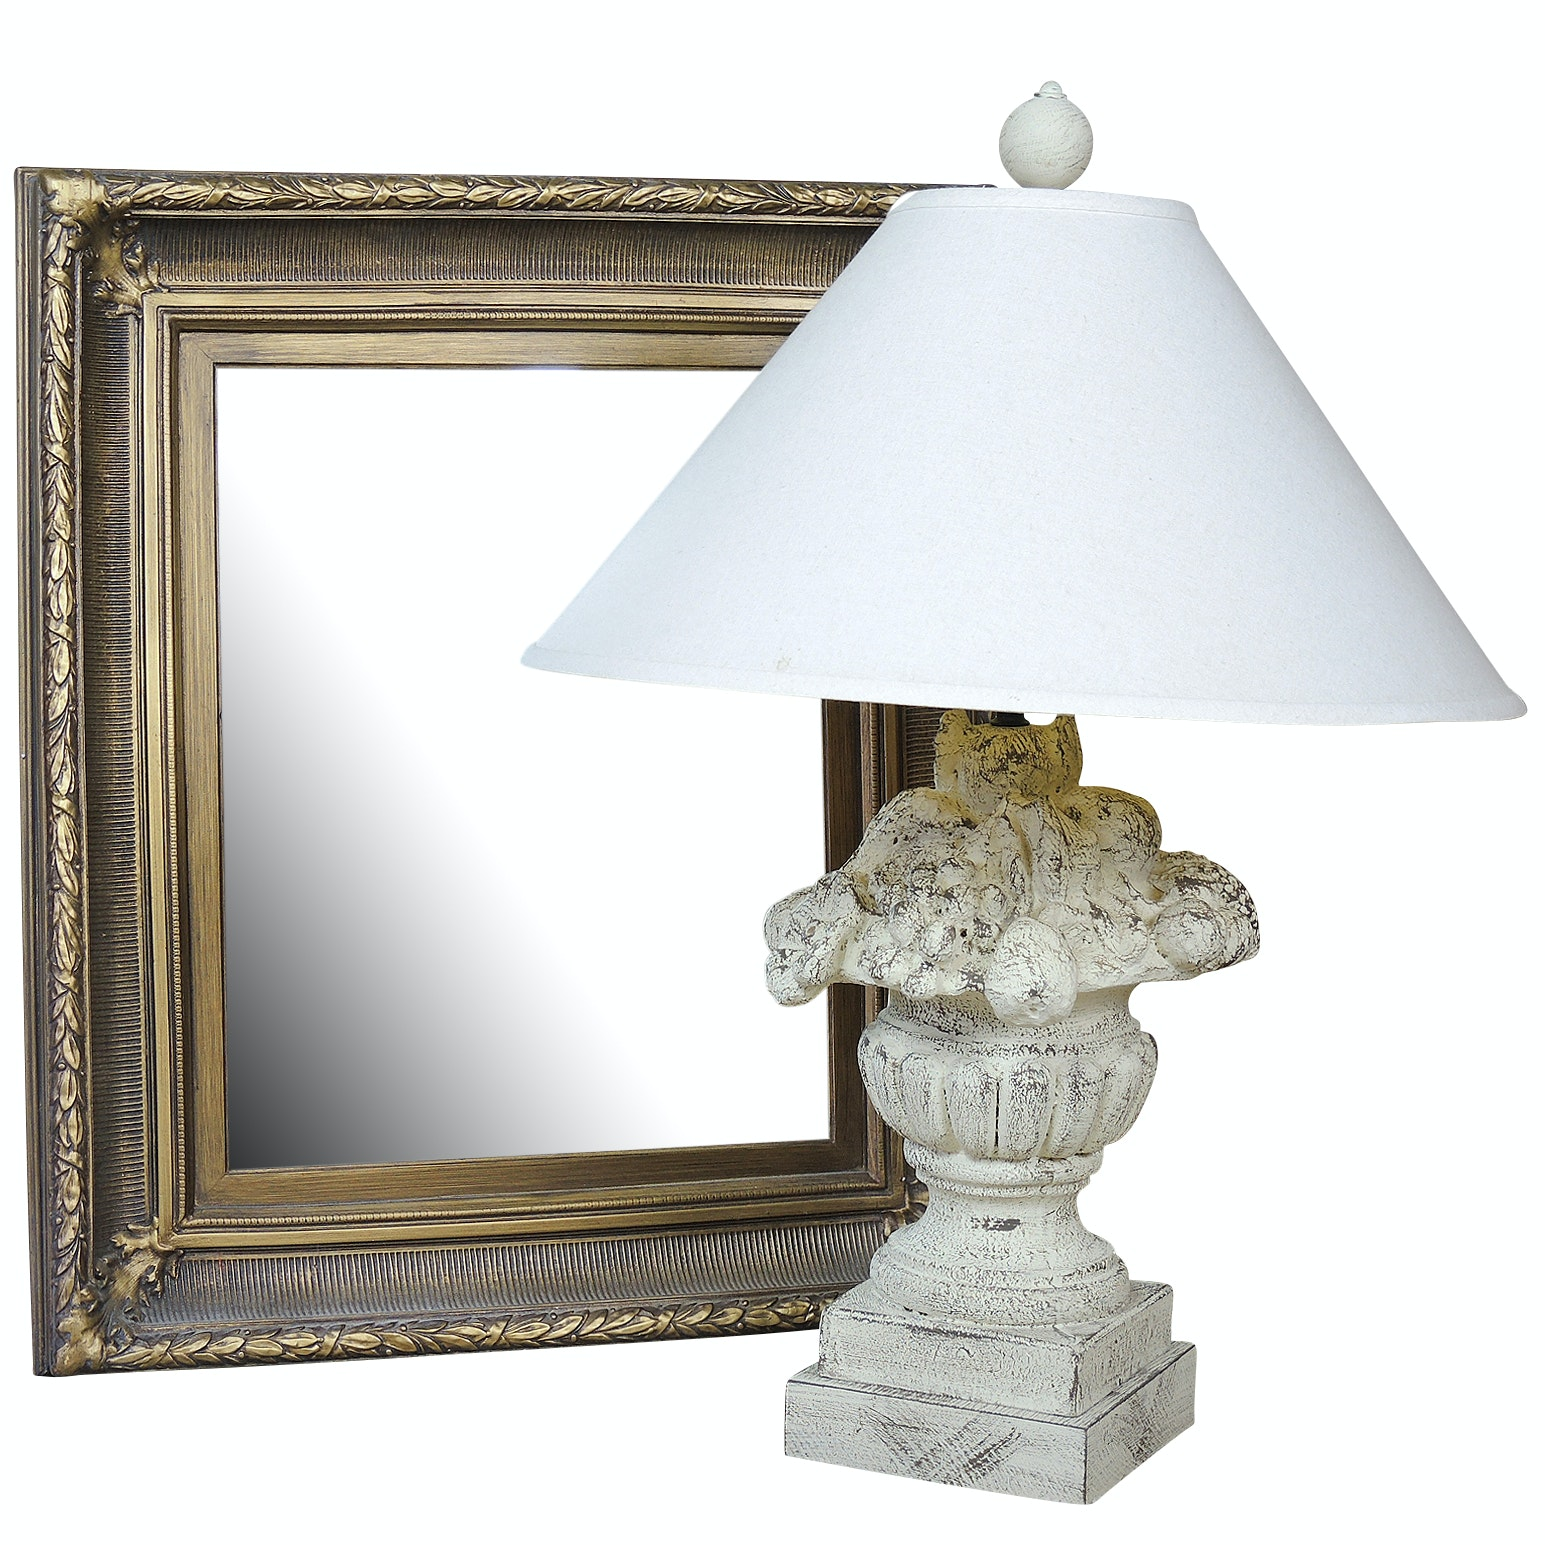 Carolina Mirror Company Wall Mirror and Urn Style Table Lamp